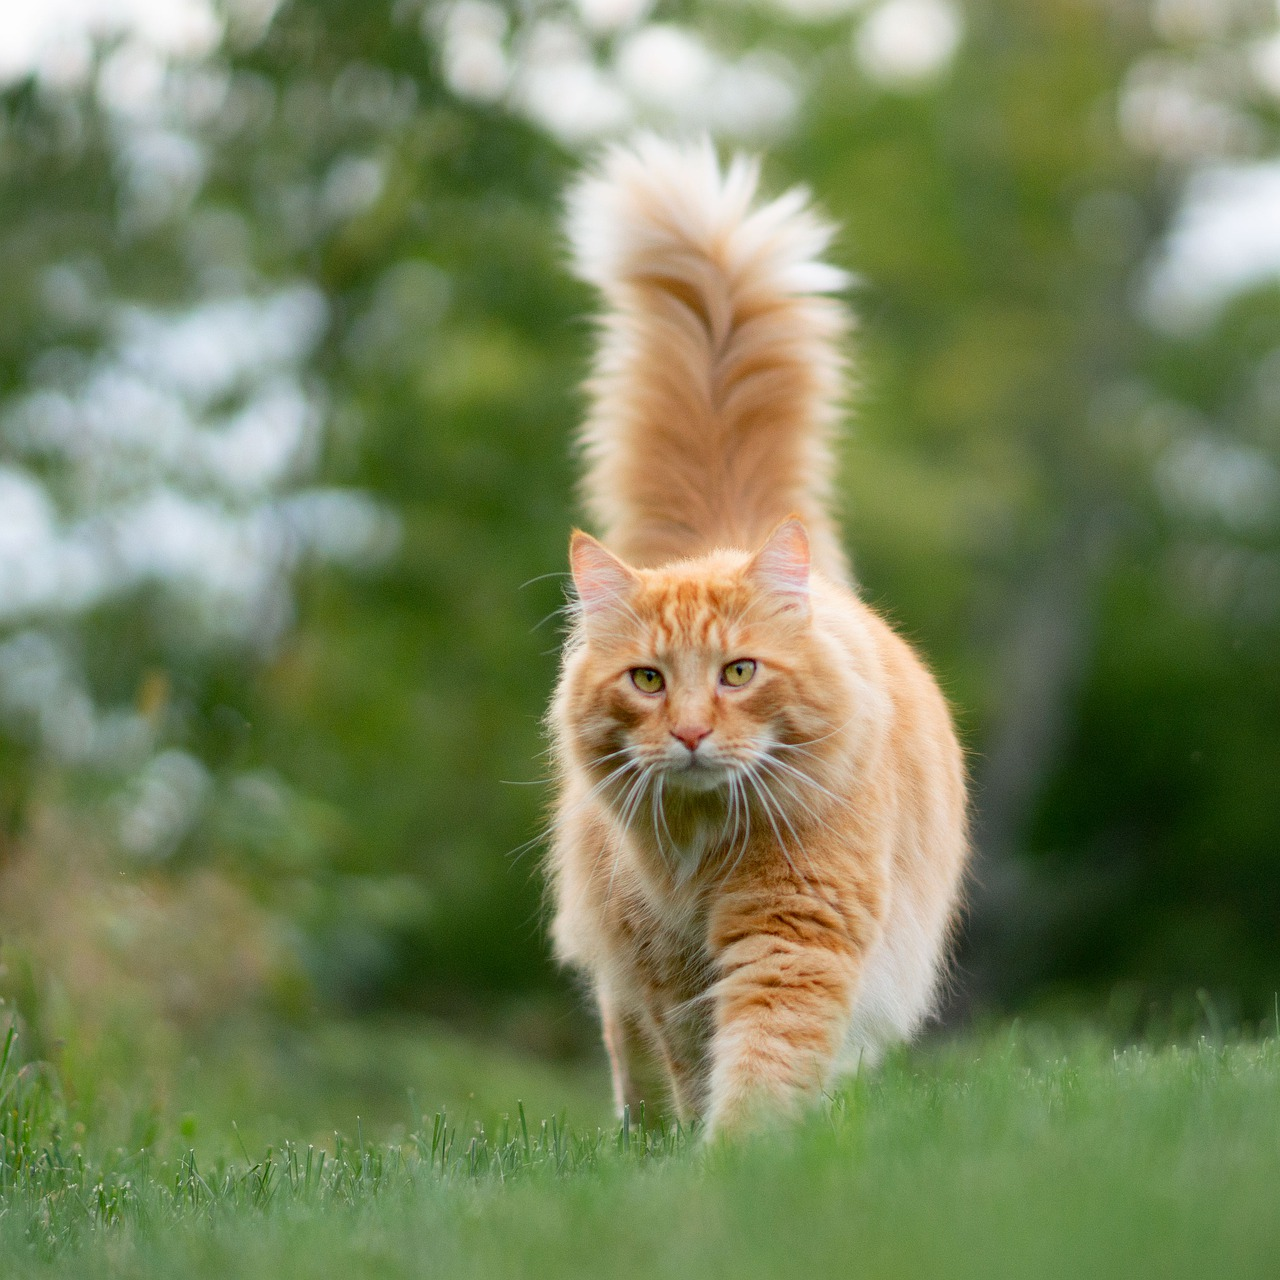 Angry or relaxed? A cat's tail says a lot about his mood